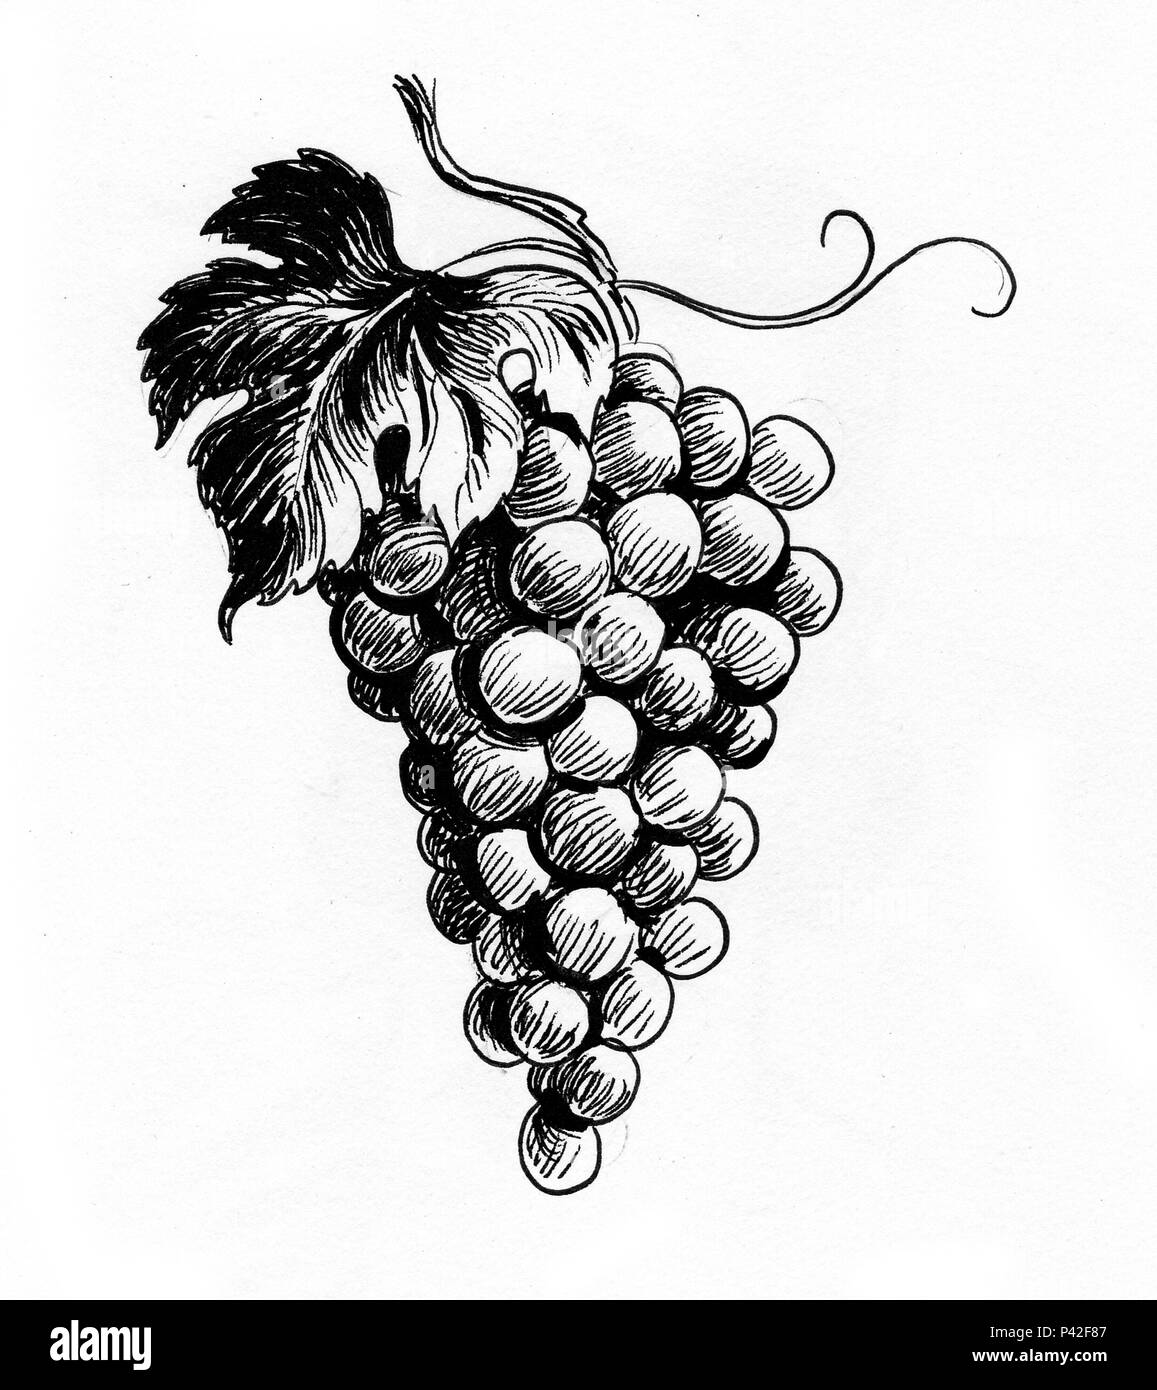 Bunch Of Grapes Ink Black And White Drawing Stock Photo Alamy